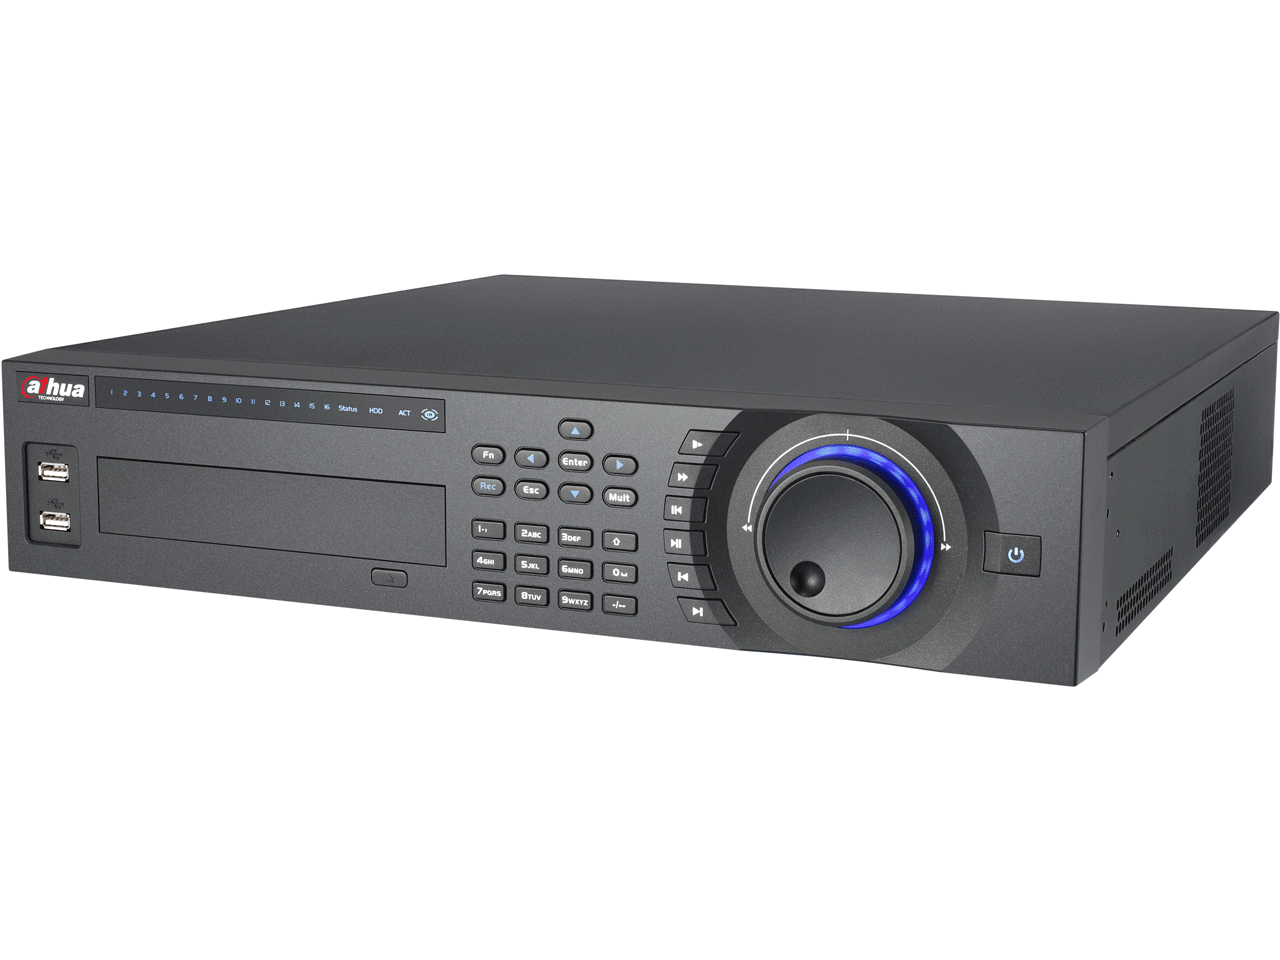 DAHUA HCVR7816S-URH 16 KANAL 1080P TRİBRİD ( HDCVI + ANALOG + IP) 2U HOT-SWAP HDD DVR